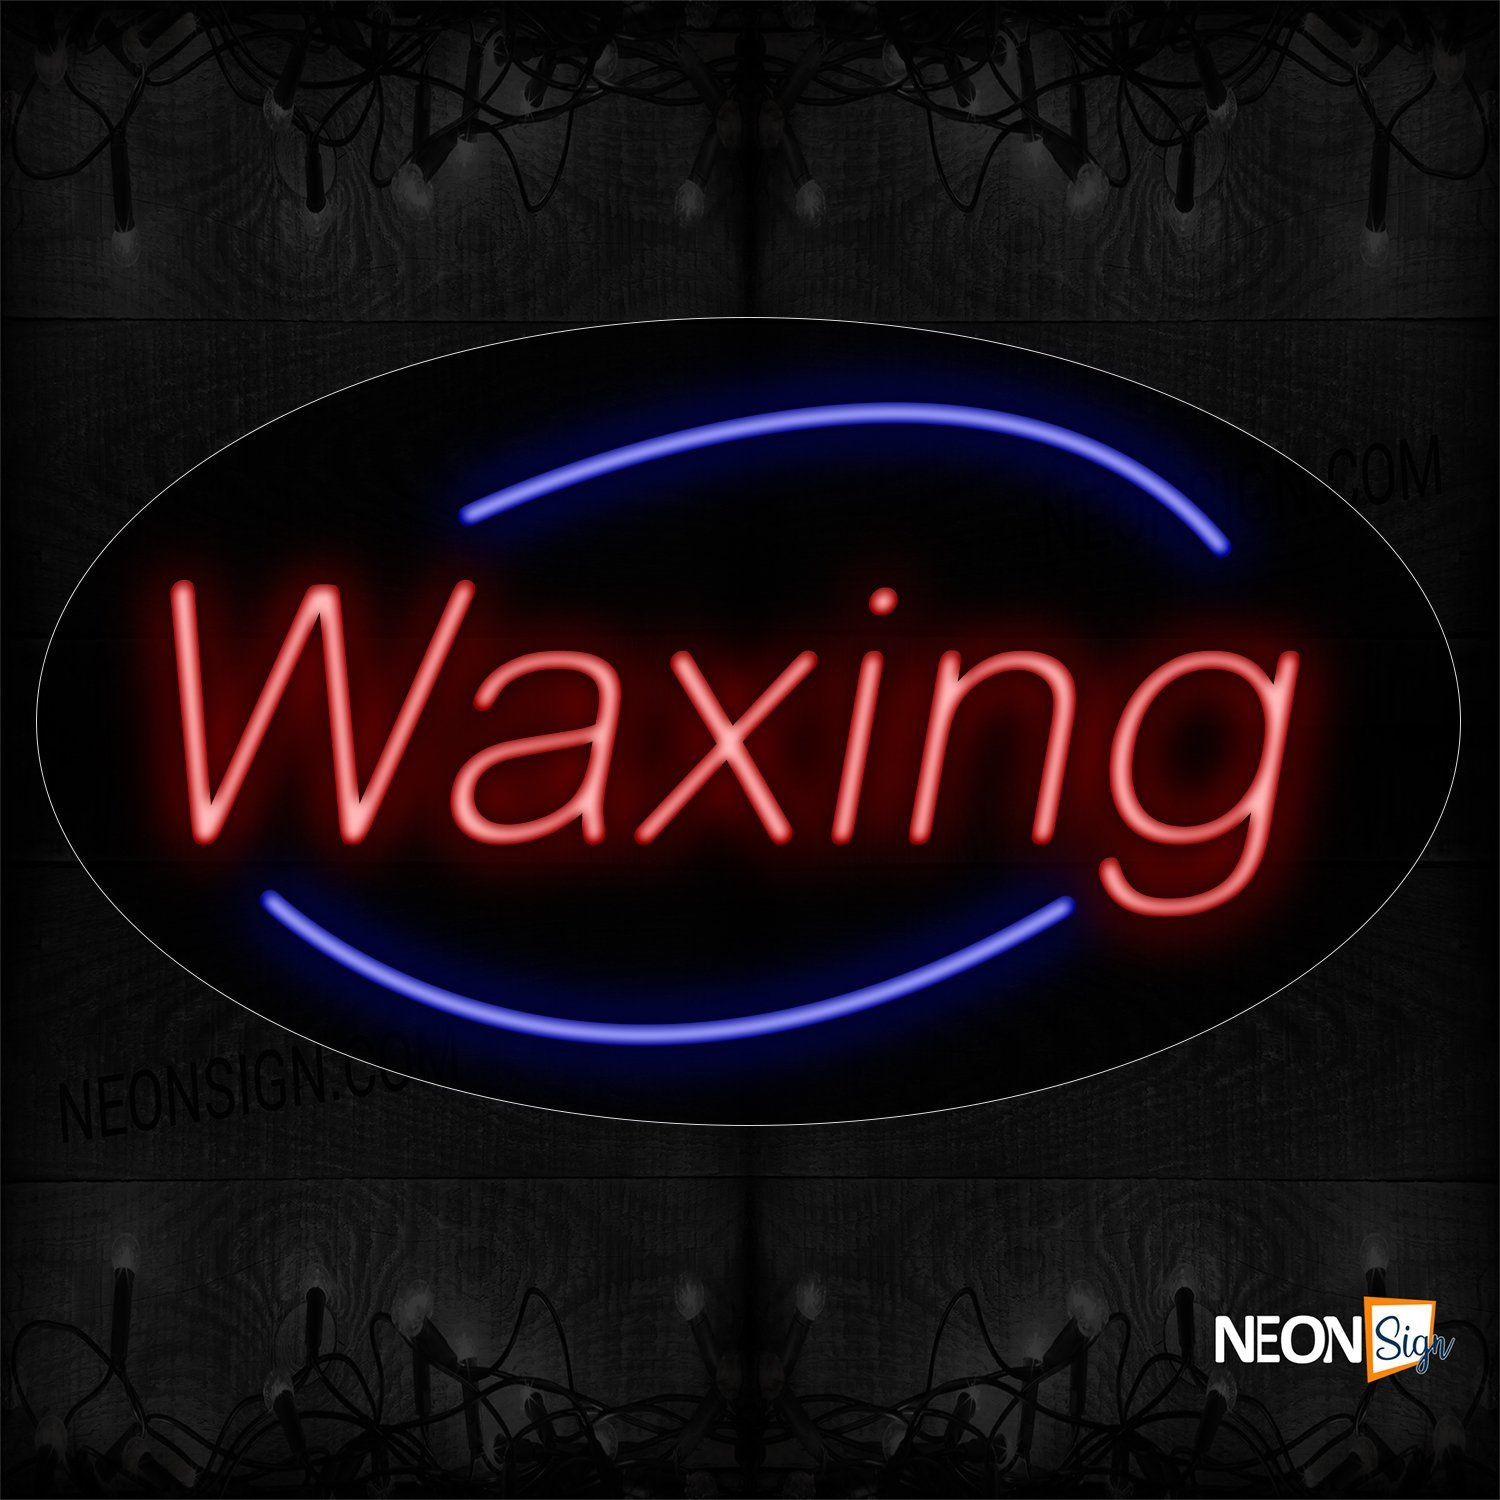 Image of 14016 Waxing In Red With Blue Arc Border Neon Signs_17x30 Black Backing